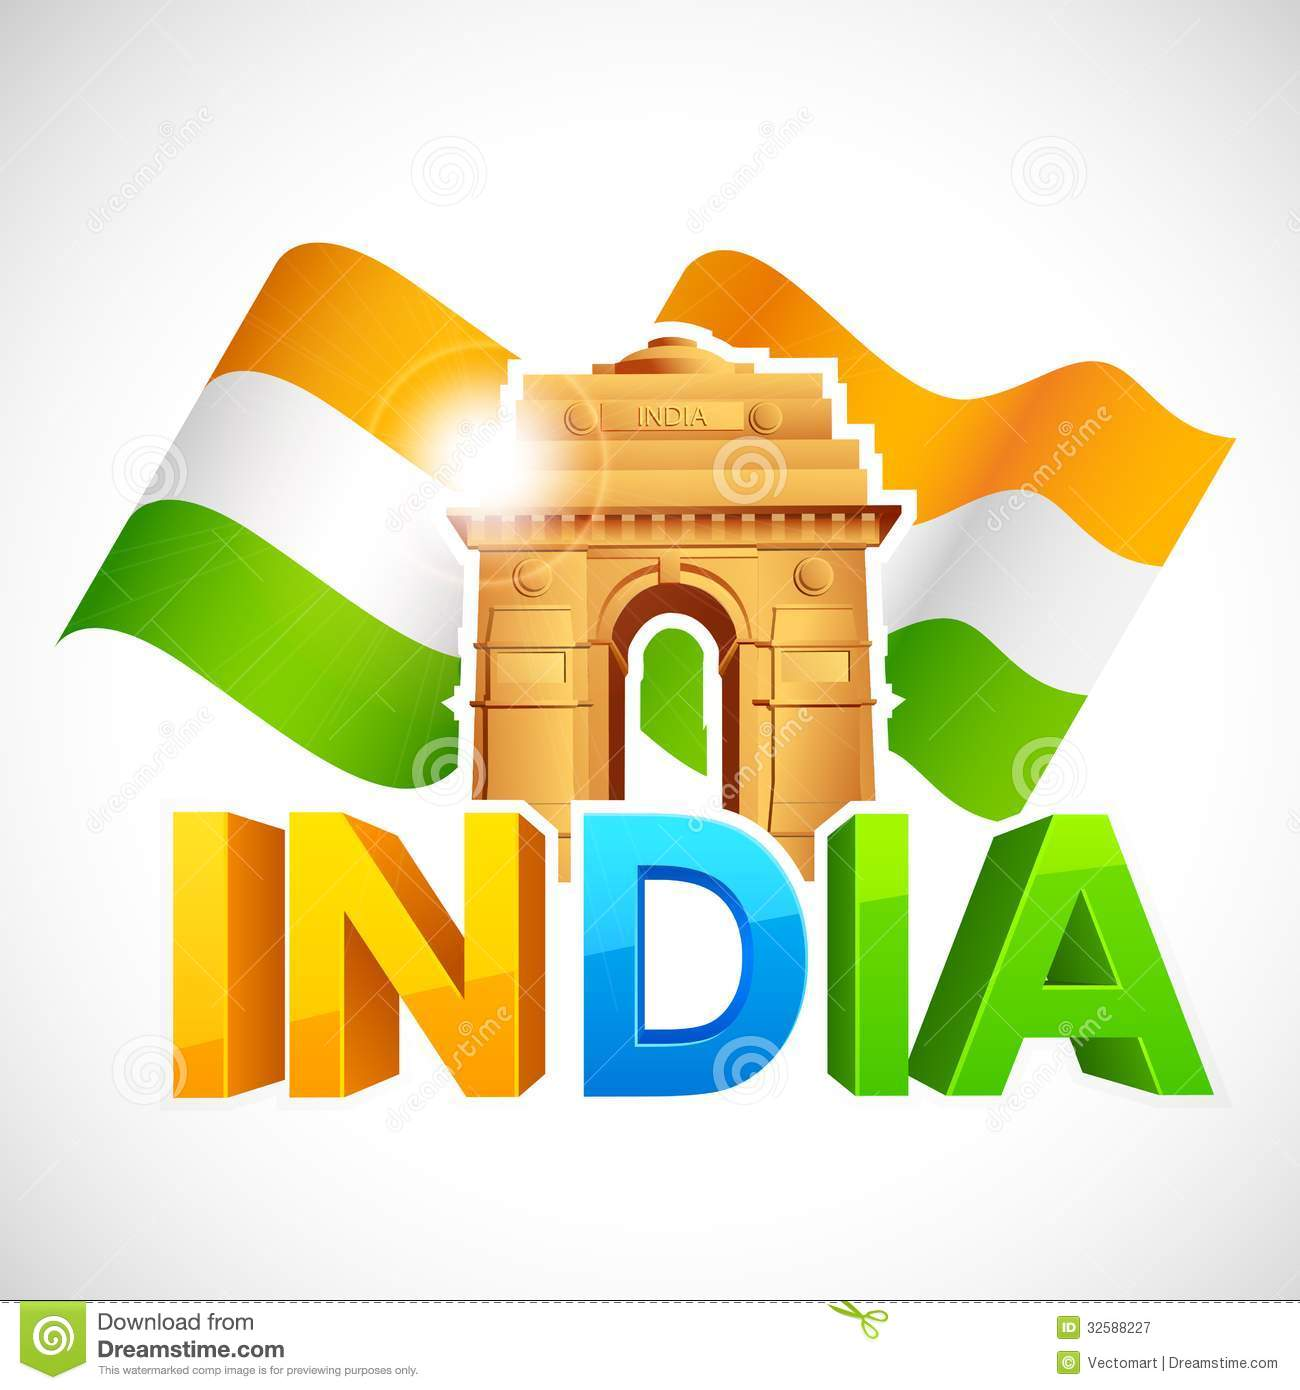 Tourism Blog Template India Gate With Tricolor Flag Stock Vector Illustration